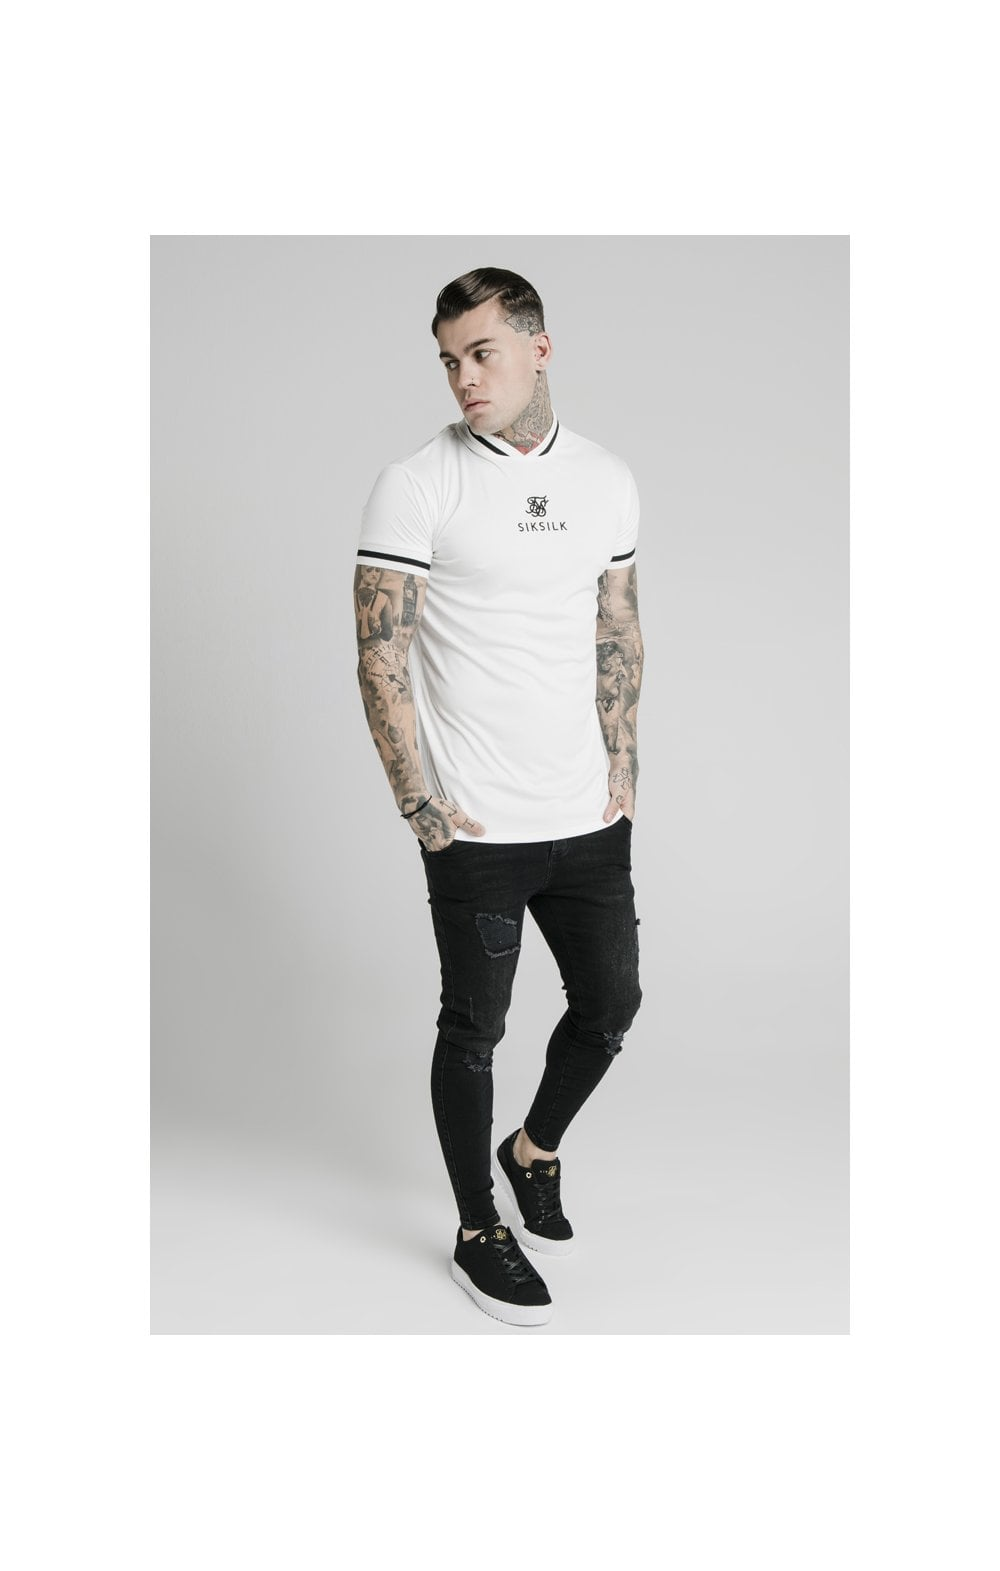 SikSilk S/S Poly Rib Collar Tee - Off White (3)